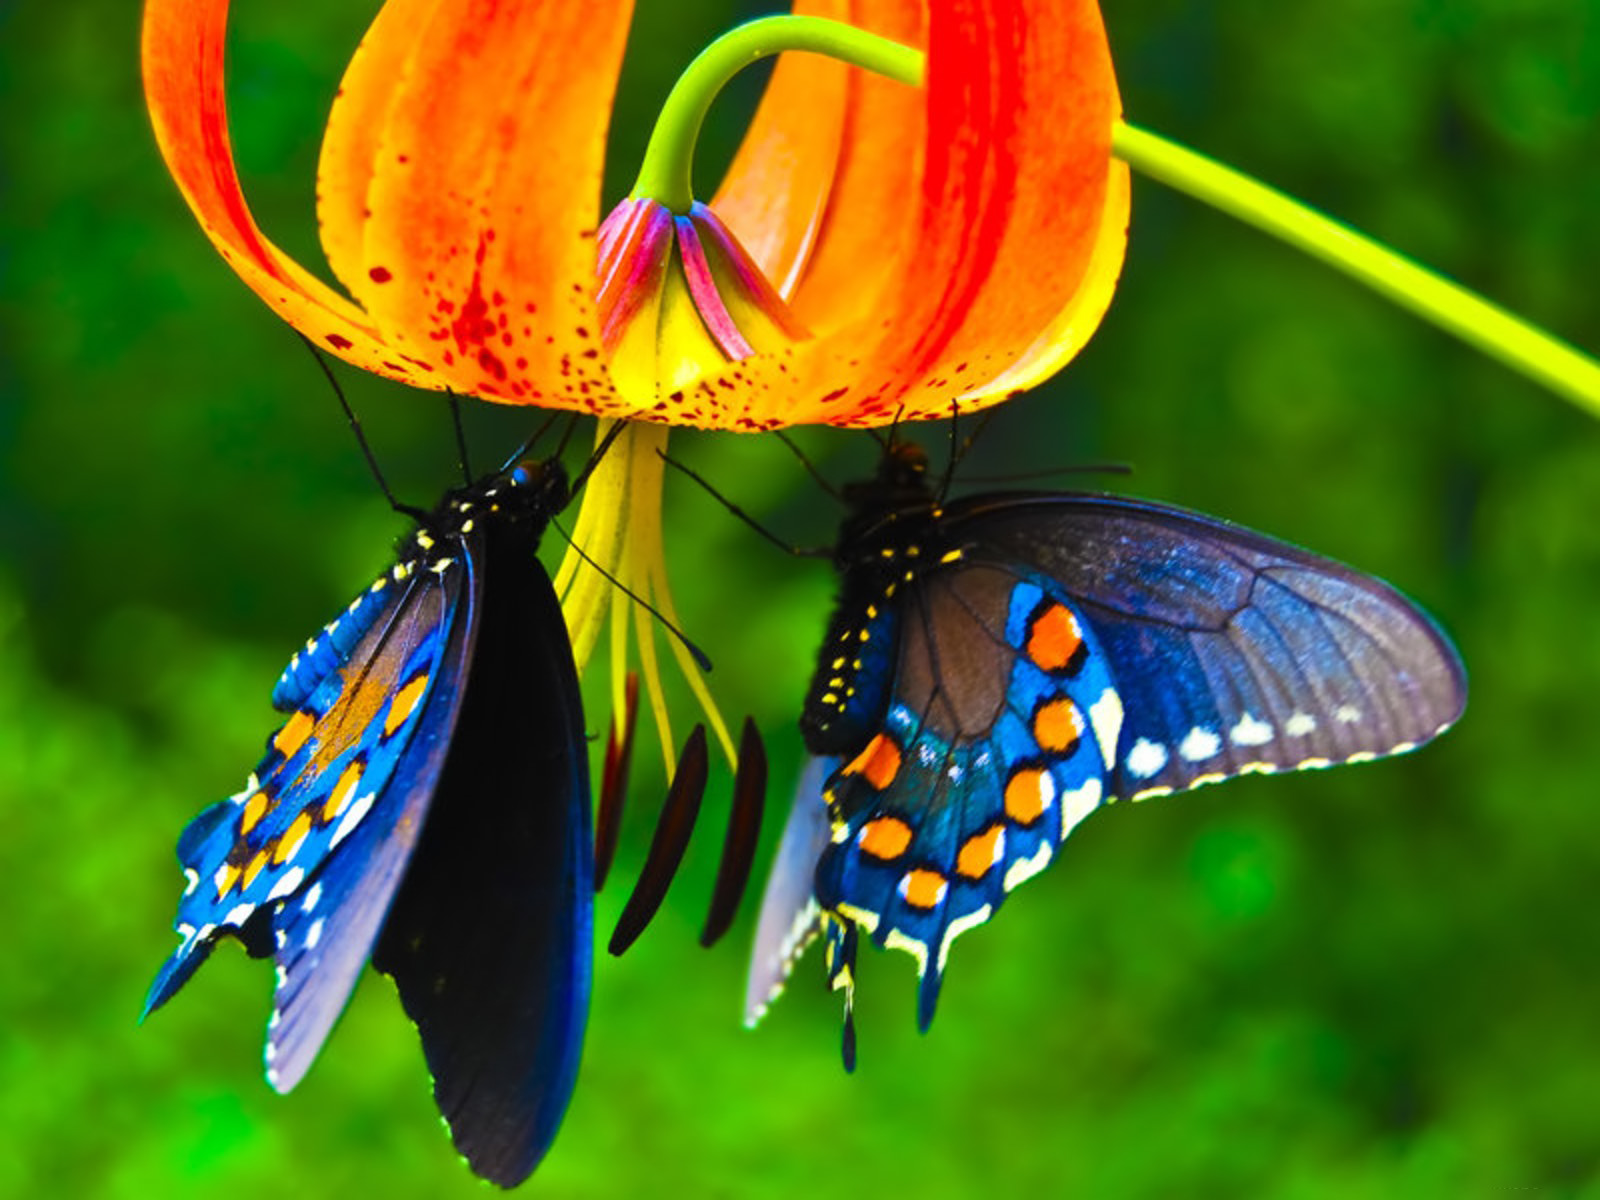 Butterfly Hd Wallpaper 1600x1200 6438